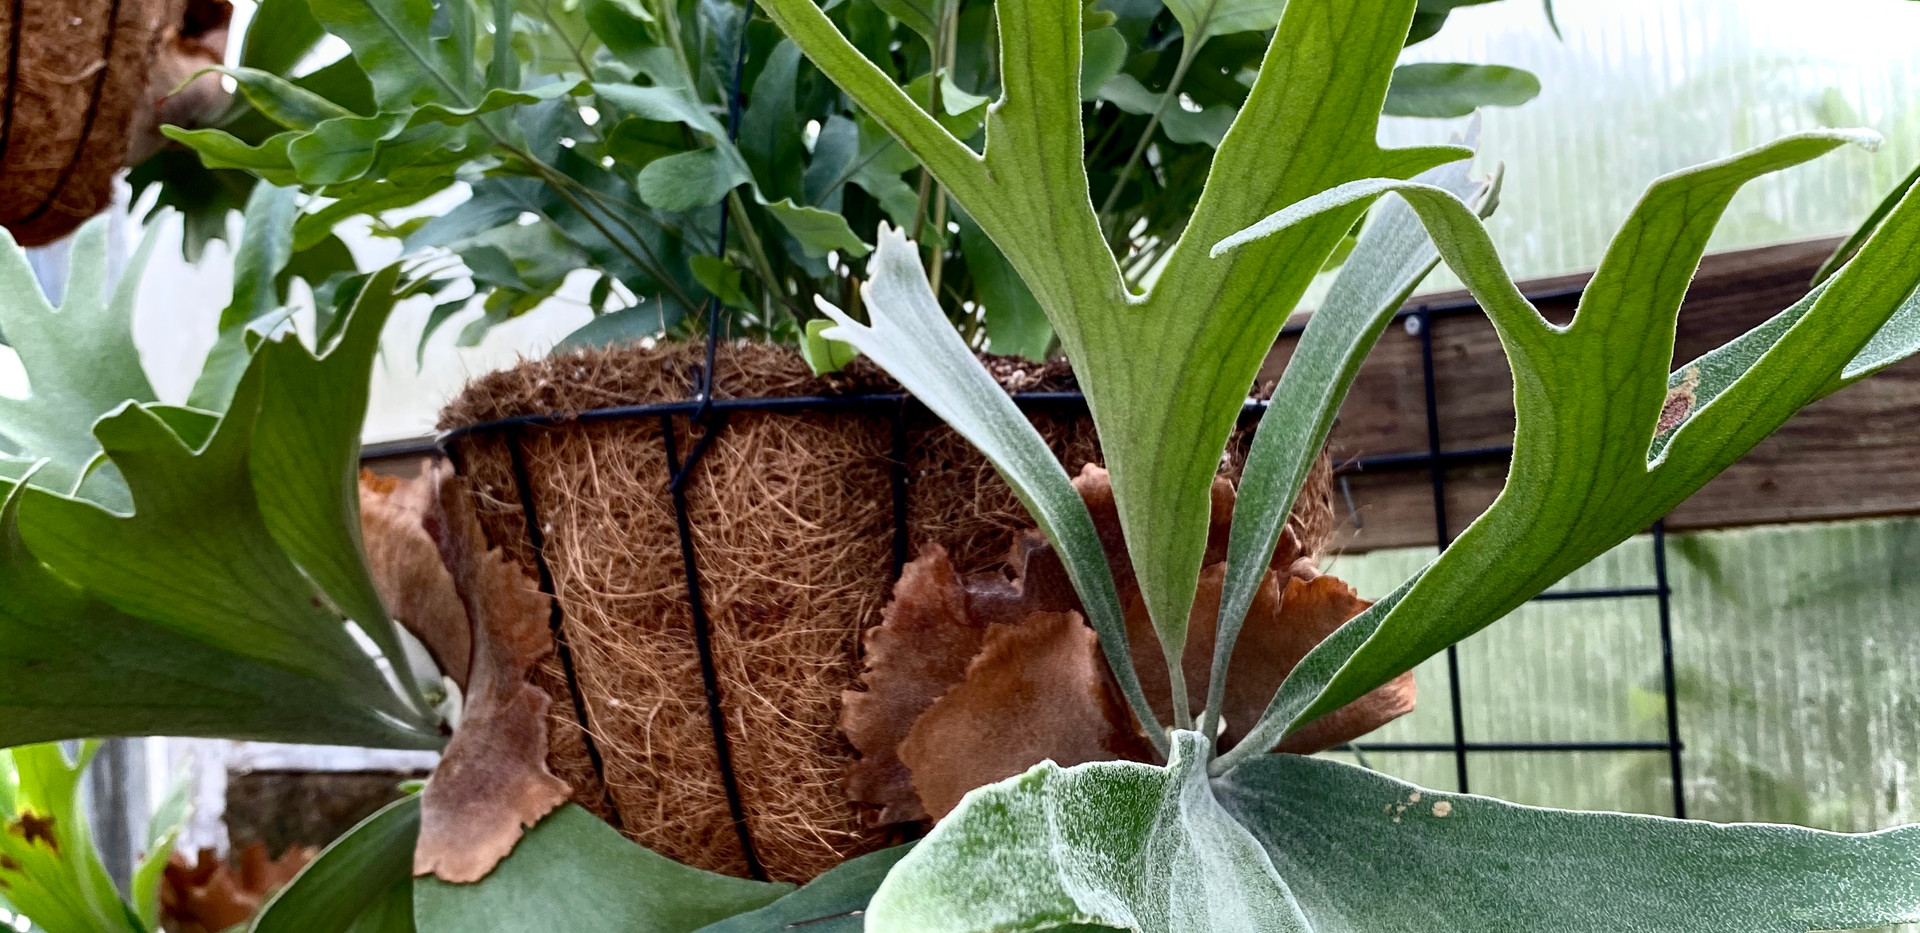 Staghorn baskets are looking fine!